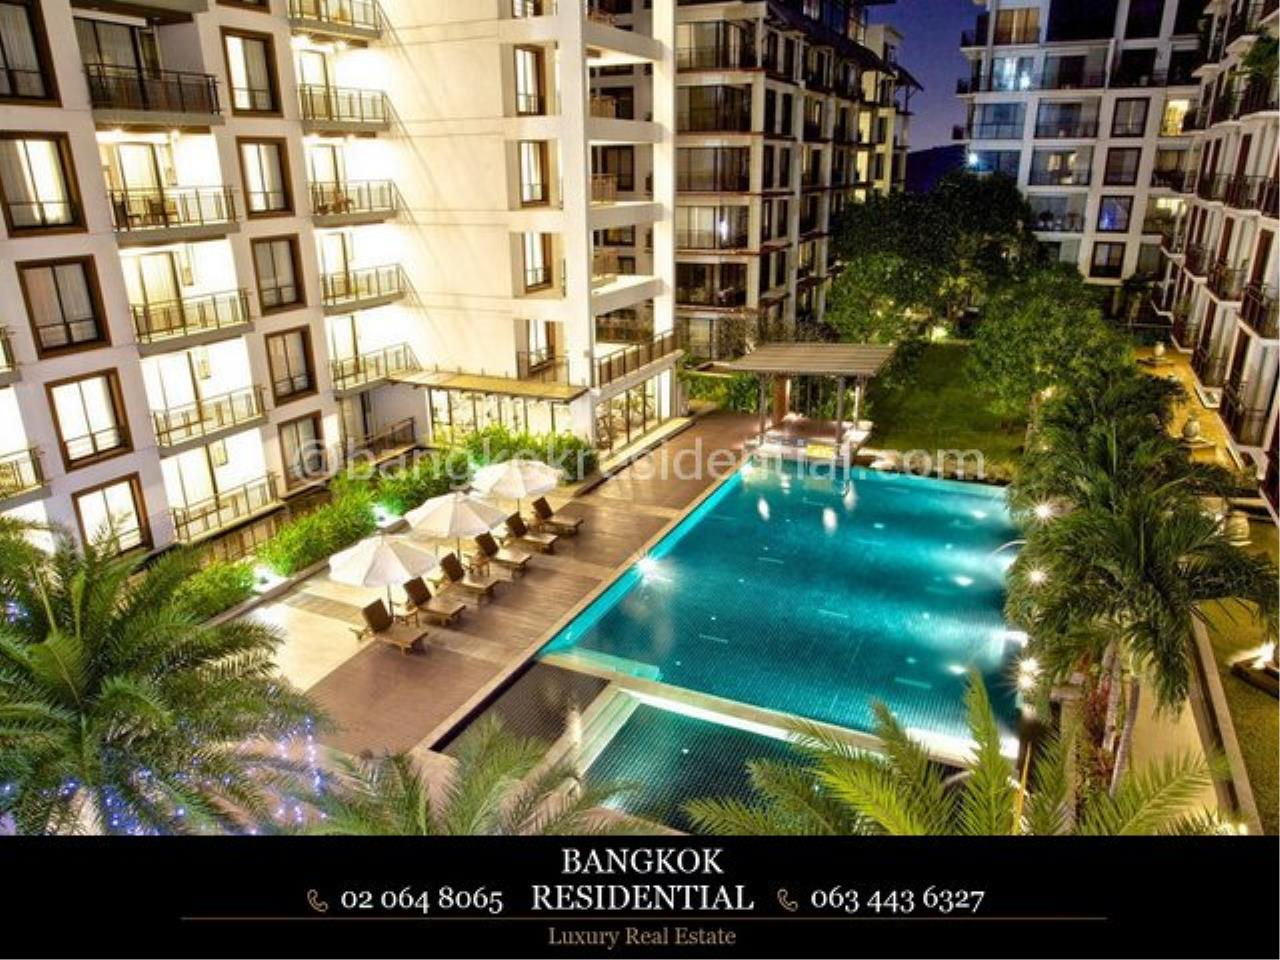 Bangkok Residential Agency's 2BR Amanta Ratchada For Sale Or Rent (BR5716CD) 3